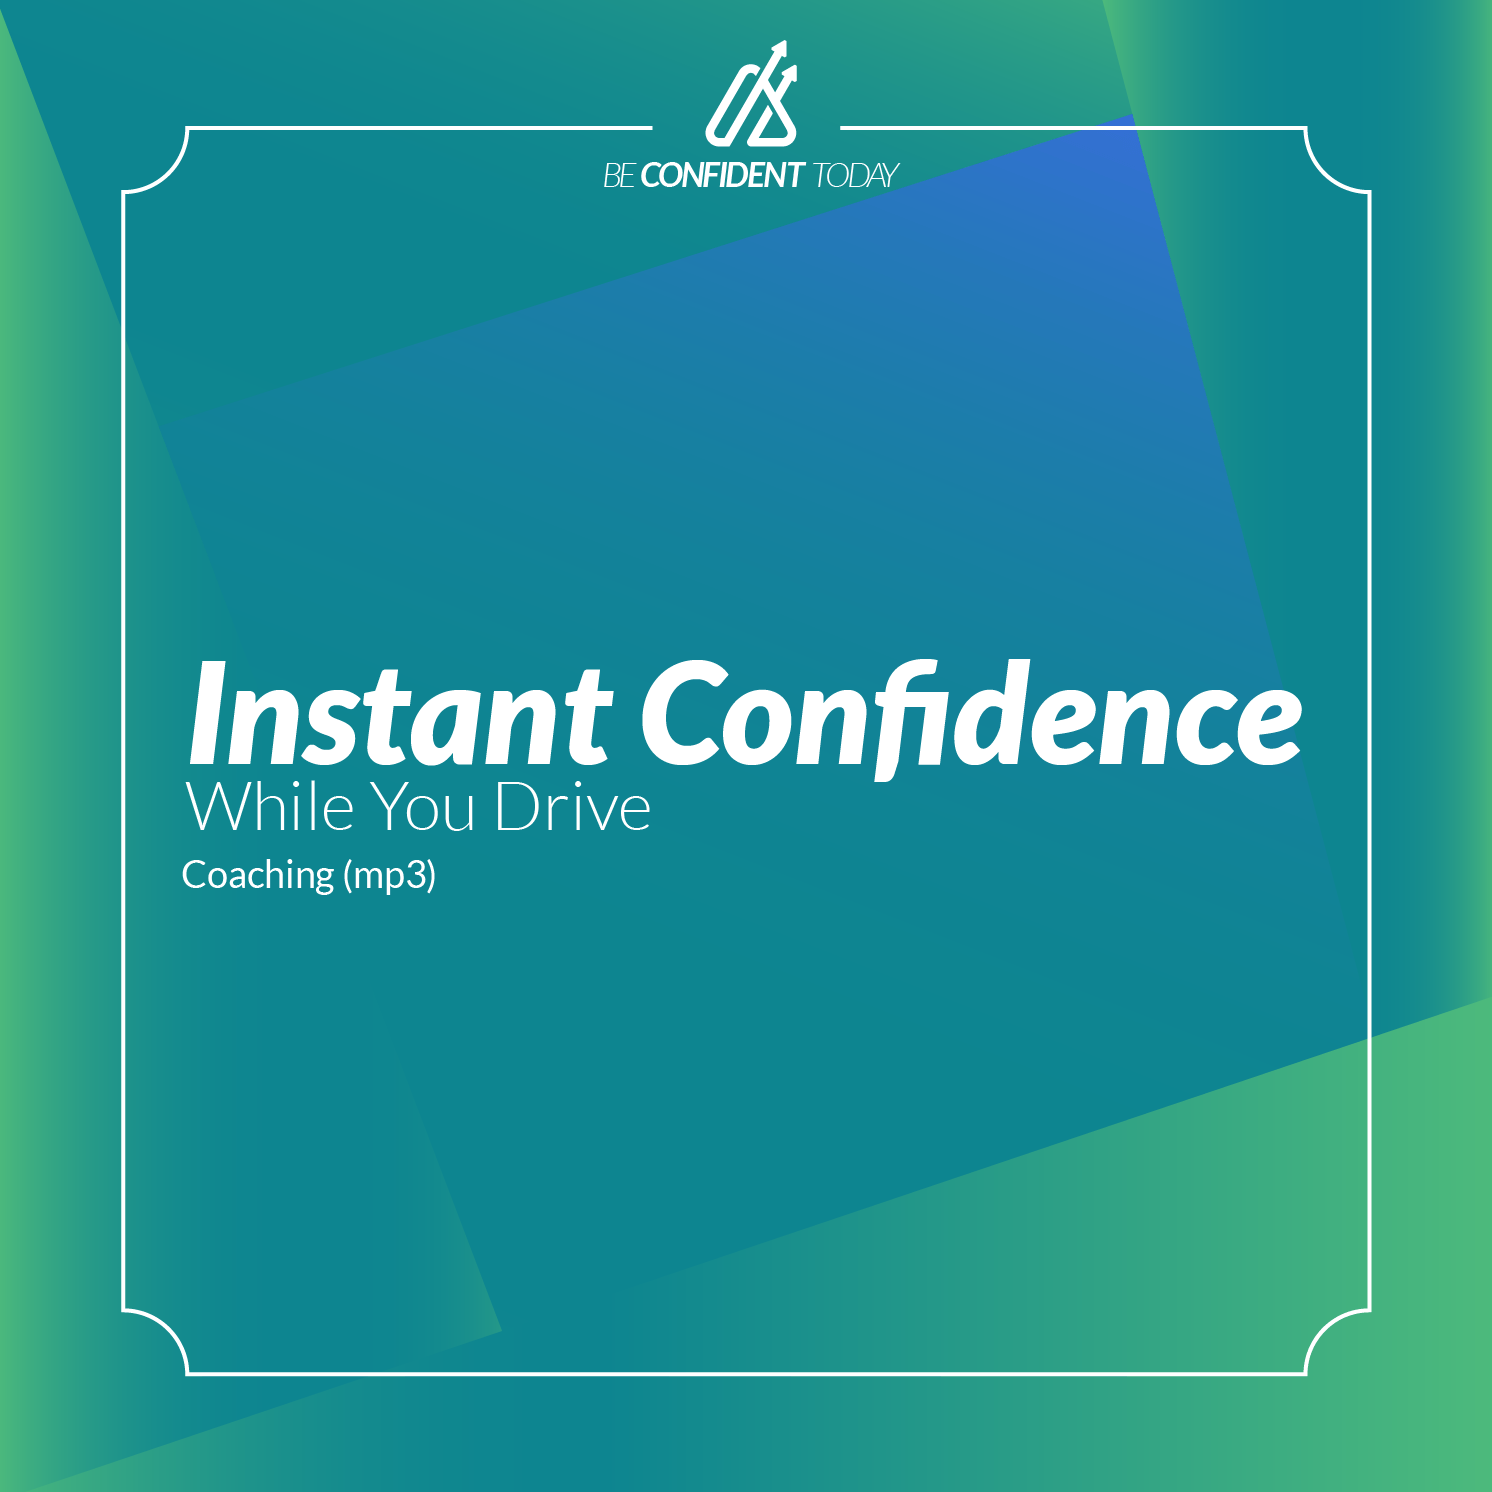 Cover photo of: Instant Confidence While you Drive